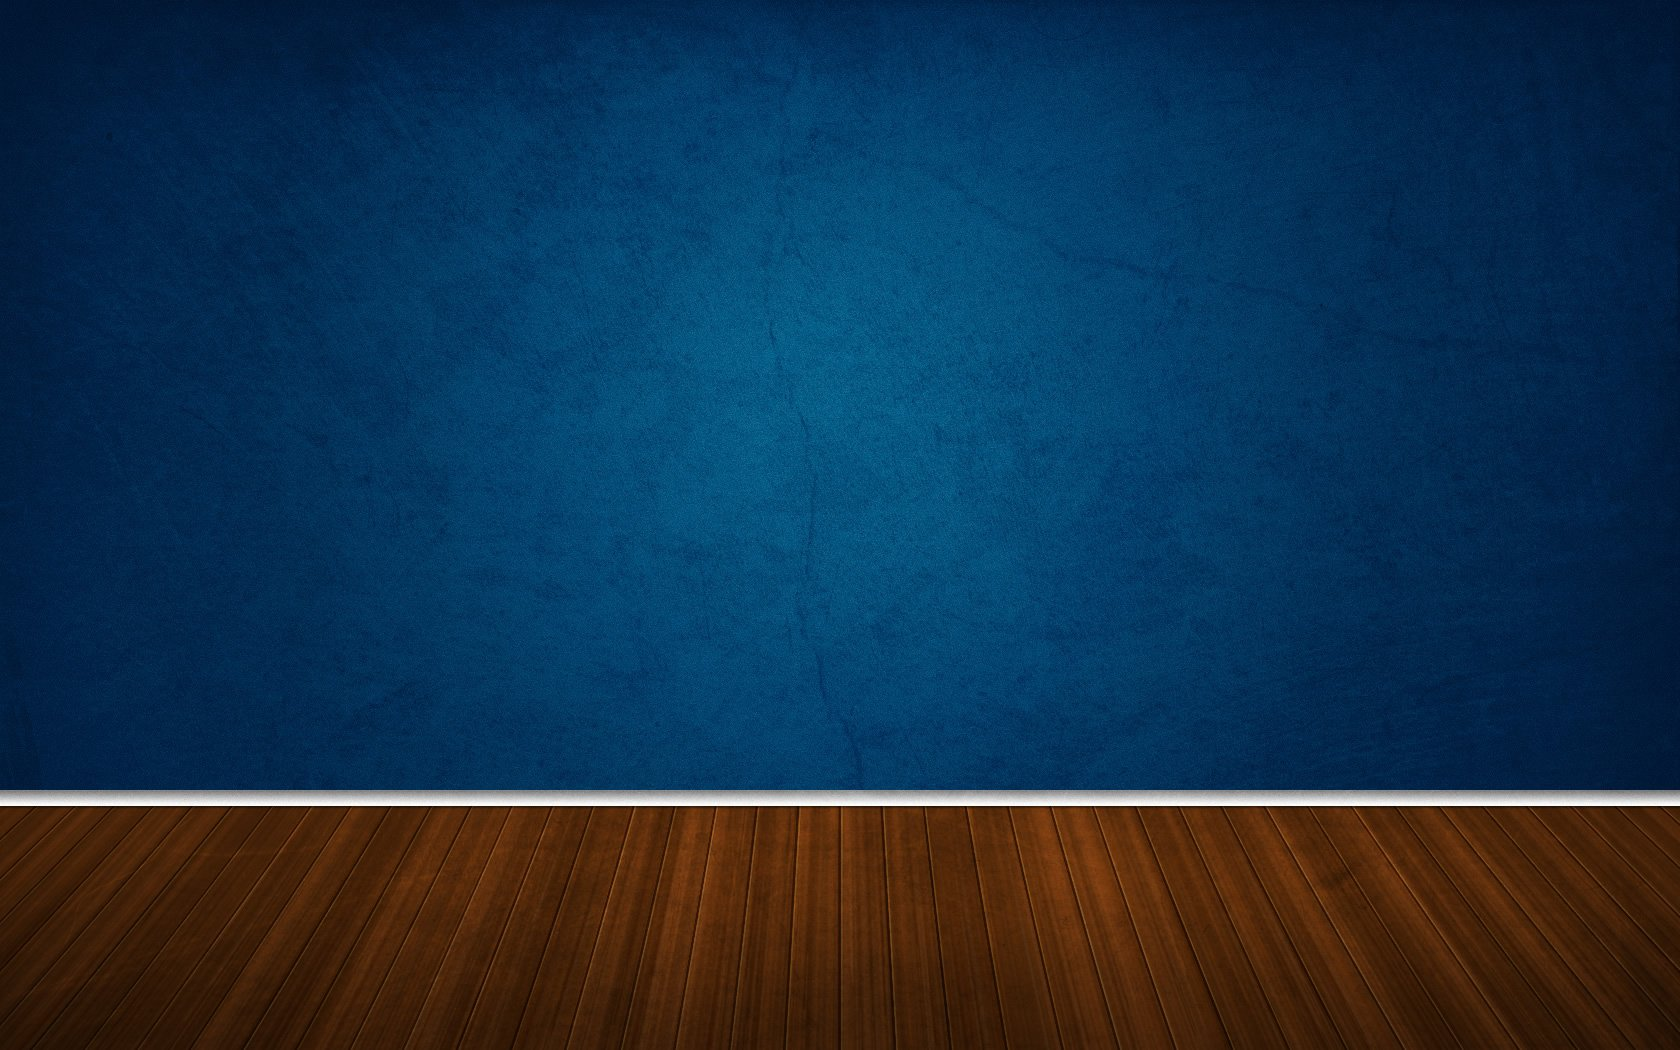 Theme Bin Blog Archive Floorboard and Wall HD Wallpaper 1680x1050